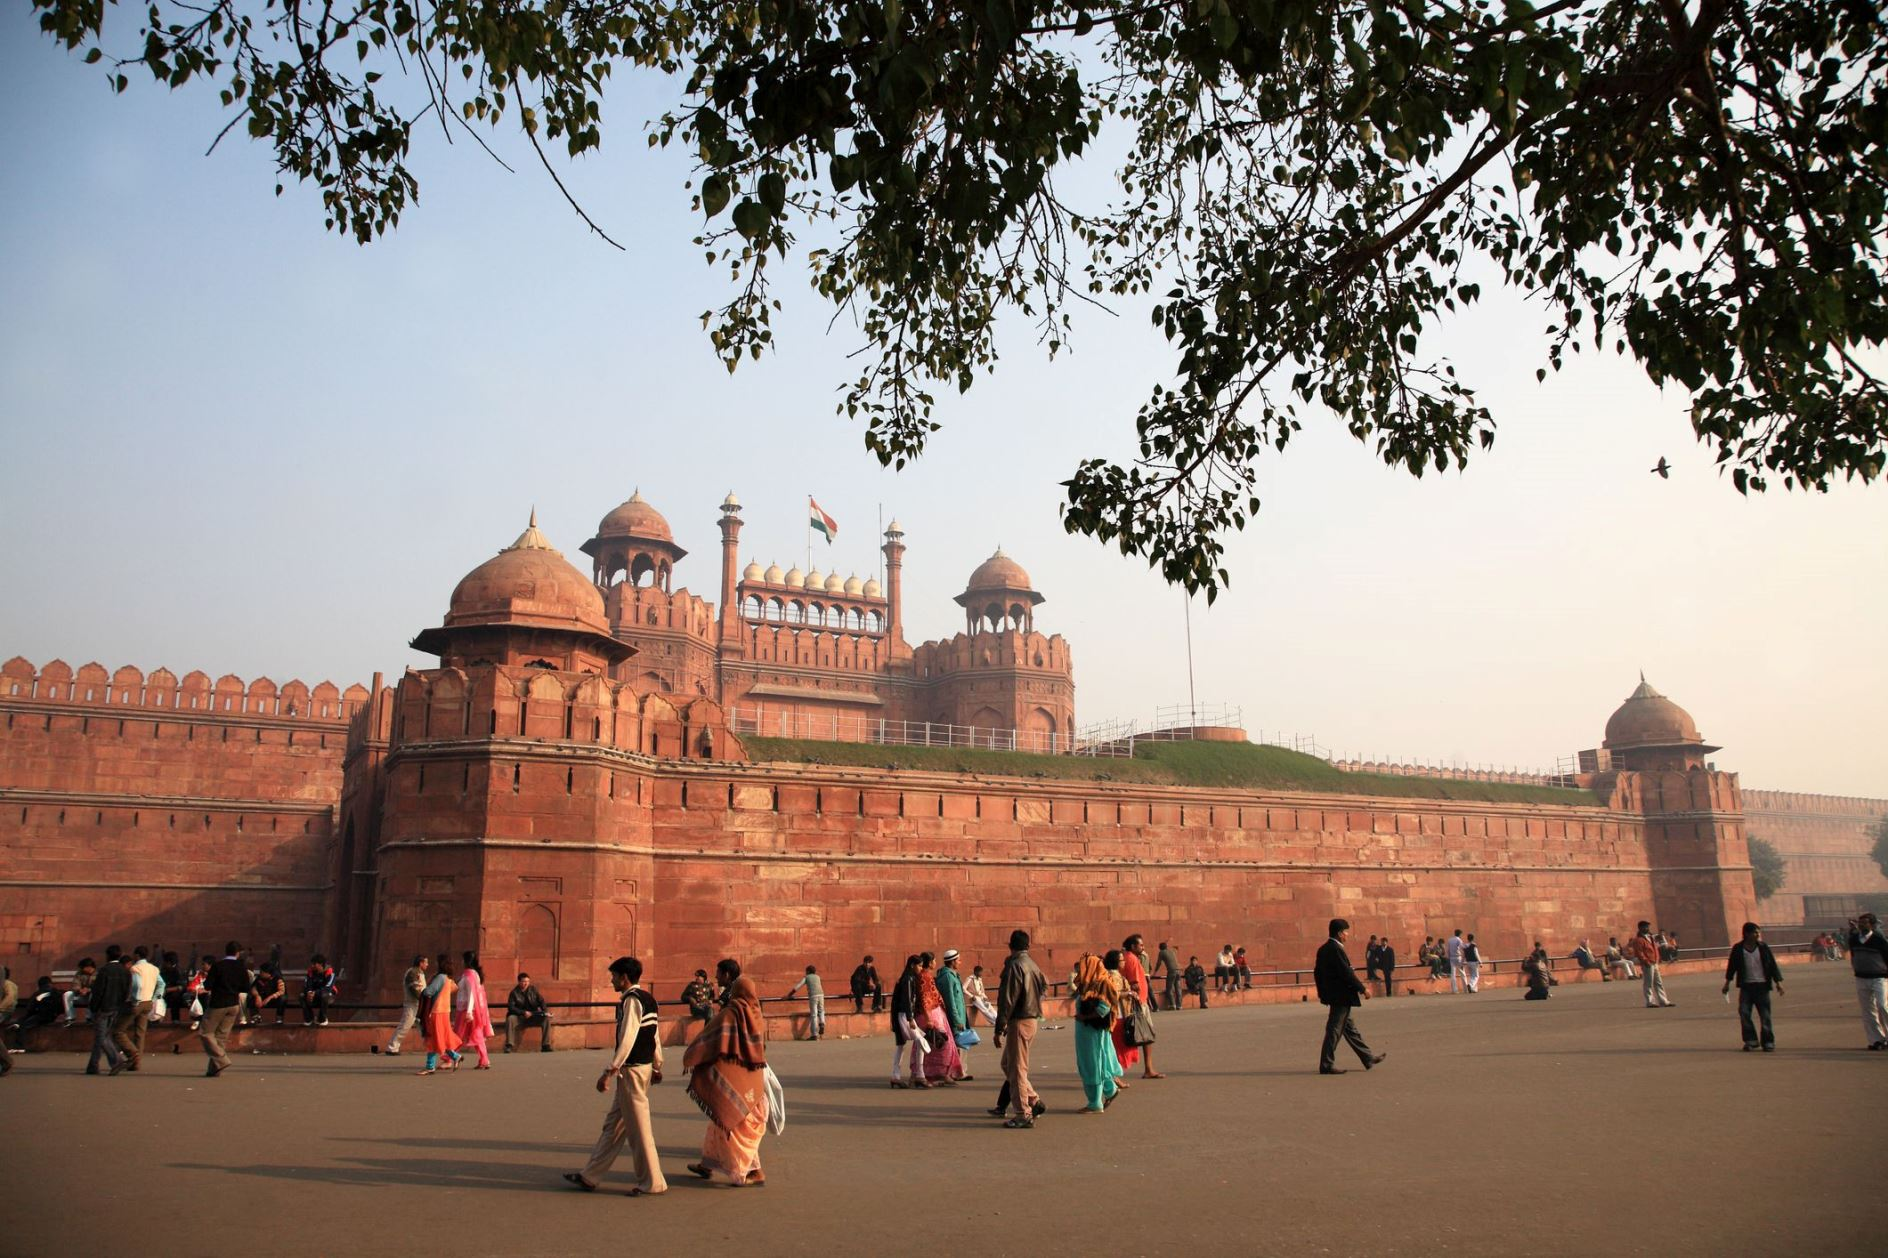 Chandni Chowk and Lal Qila top the list of must-visit places in Delhi